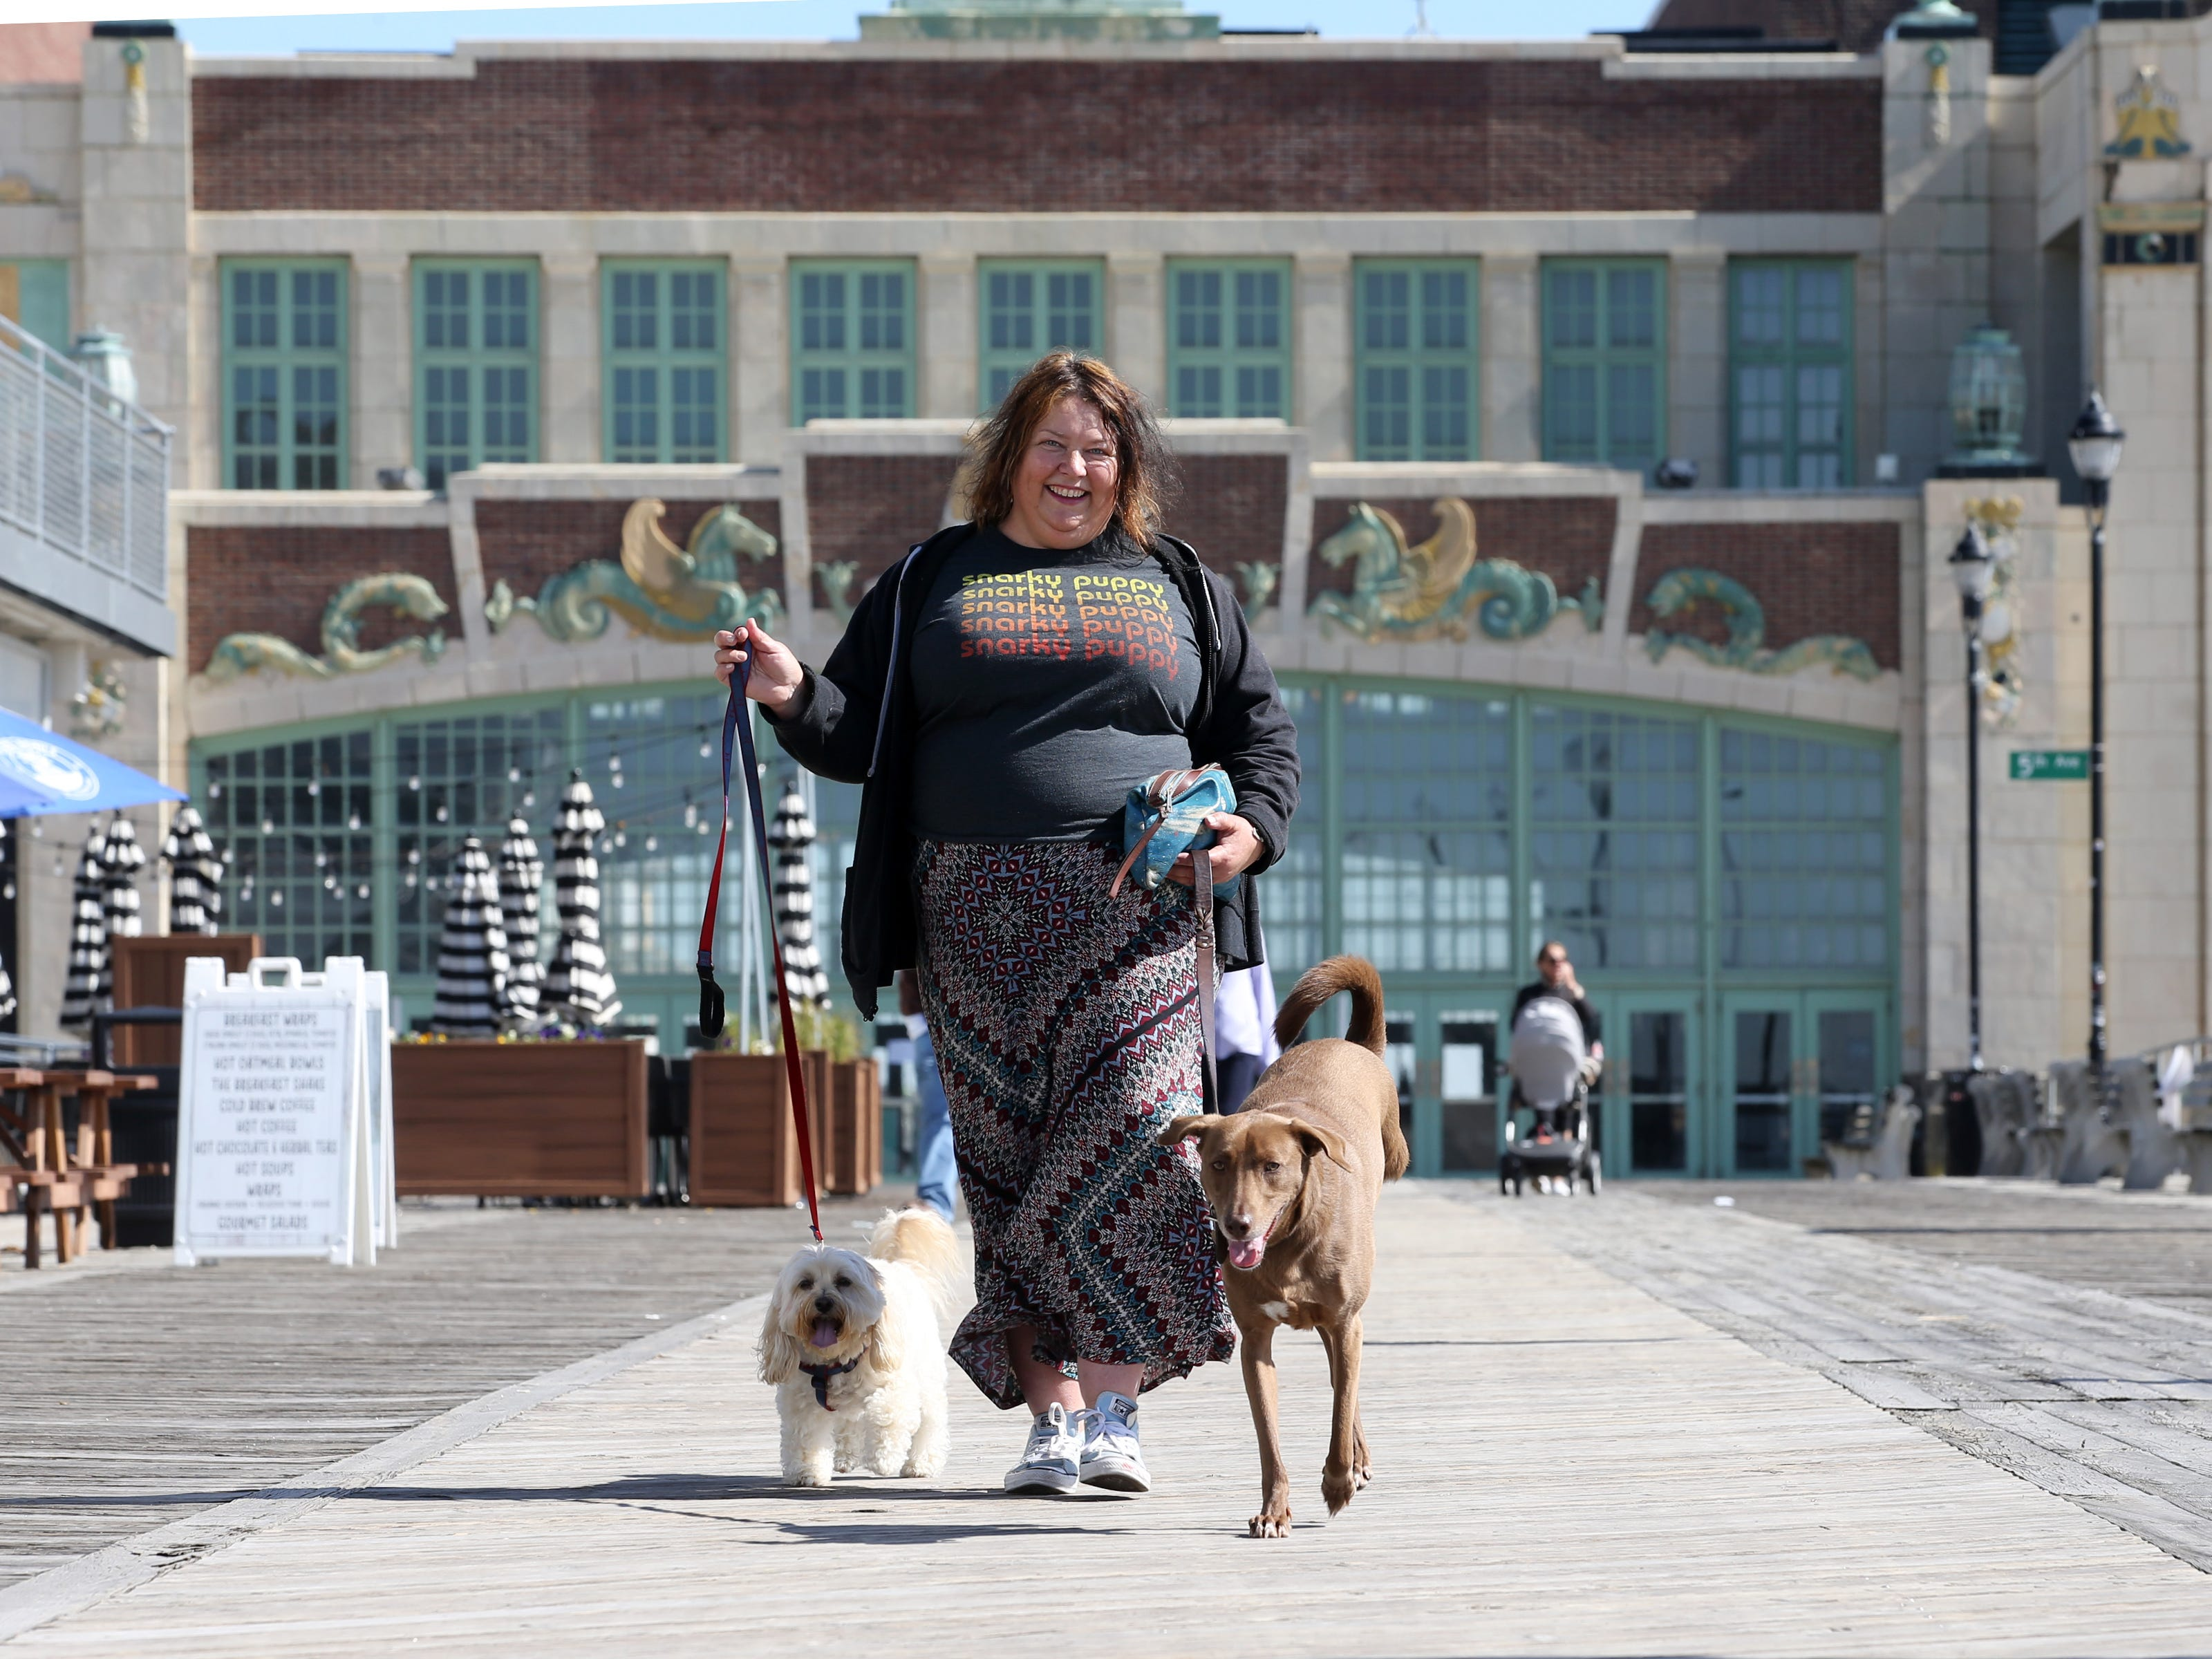 Kate Krisinski of Asbury Park, owner of Beach Baby Dog Care, walks Mango and Choco along the boardwalk during a sunny and mild morning in Asbury Park, NJ Monday, May 6, 2019.